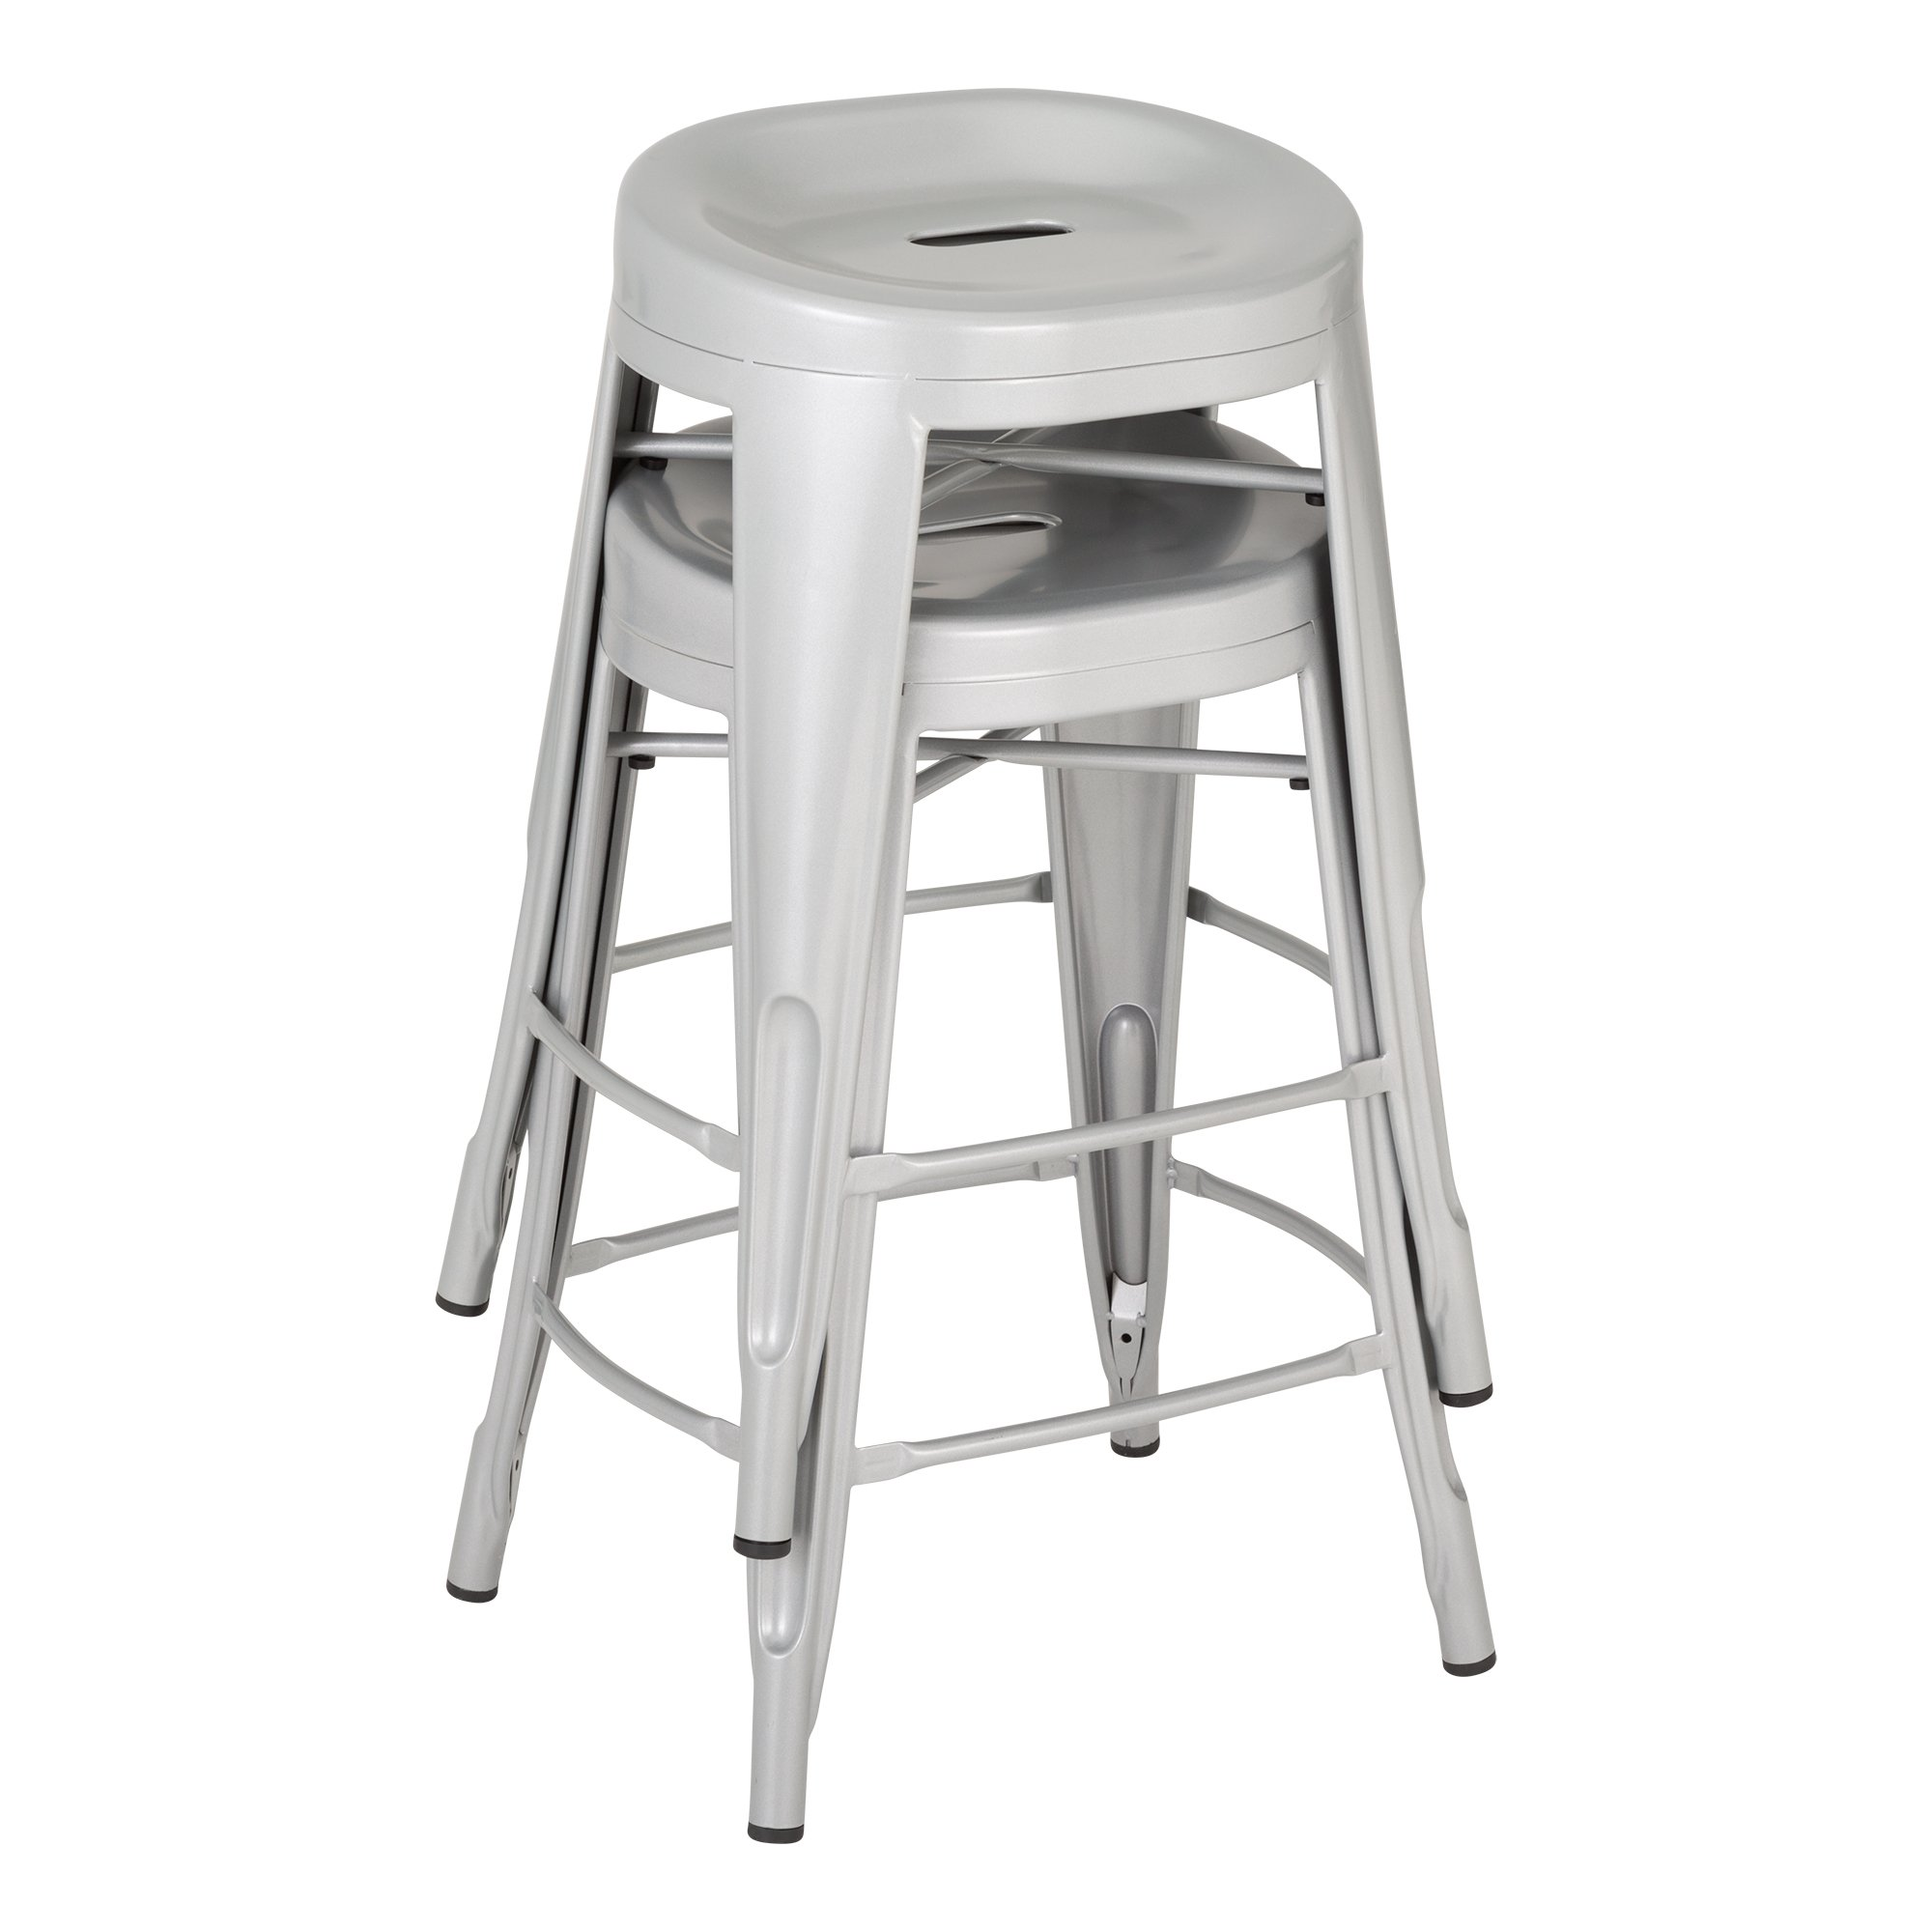 Fat Catalog ALT-XUW-1001SL Modern Industrial Metal Bar Stool w/ Curved Seat, 24'' Height, 14.2'' Wide, 17.32'' Length, Silver (Pack of 2)